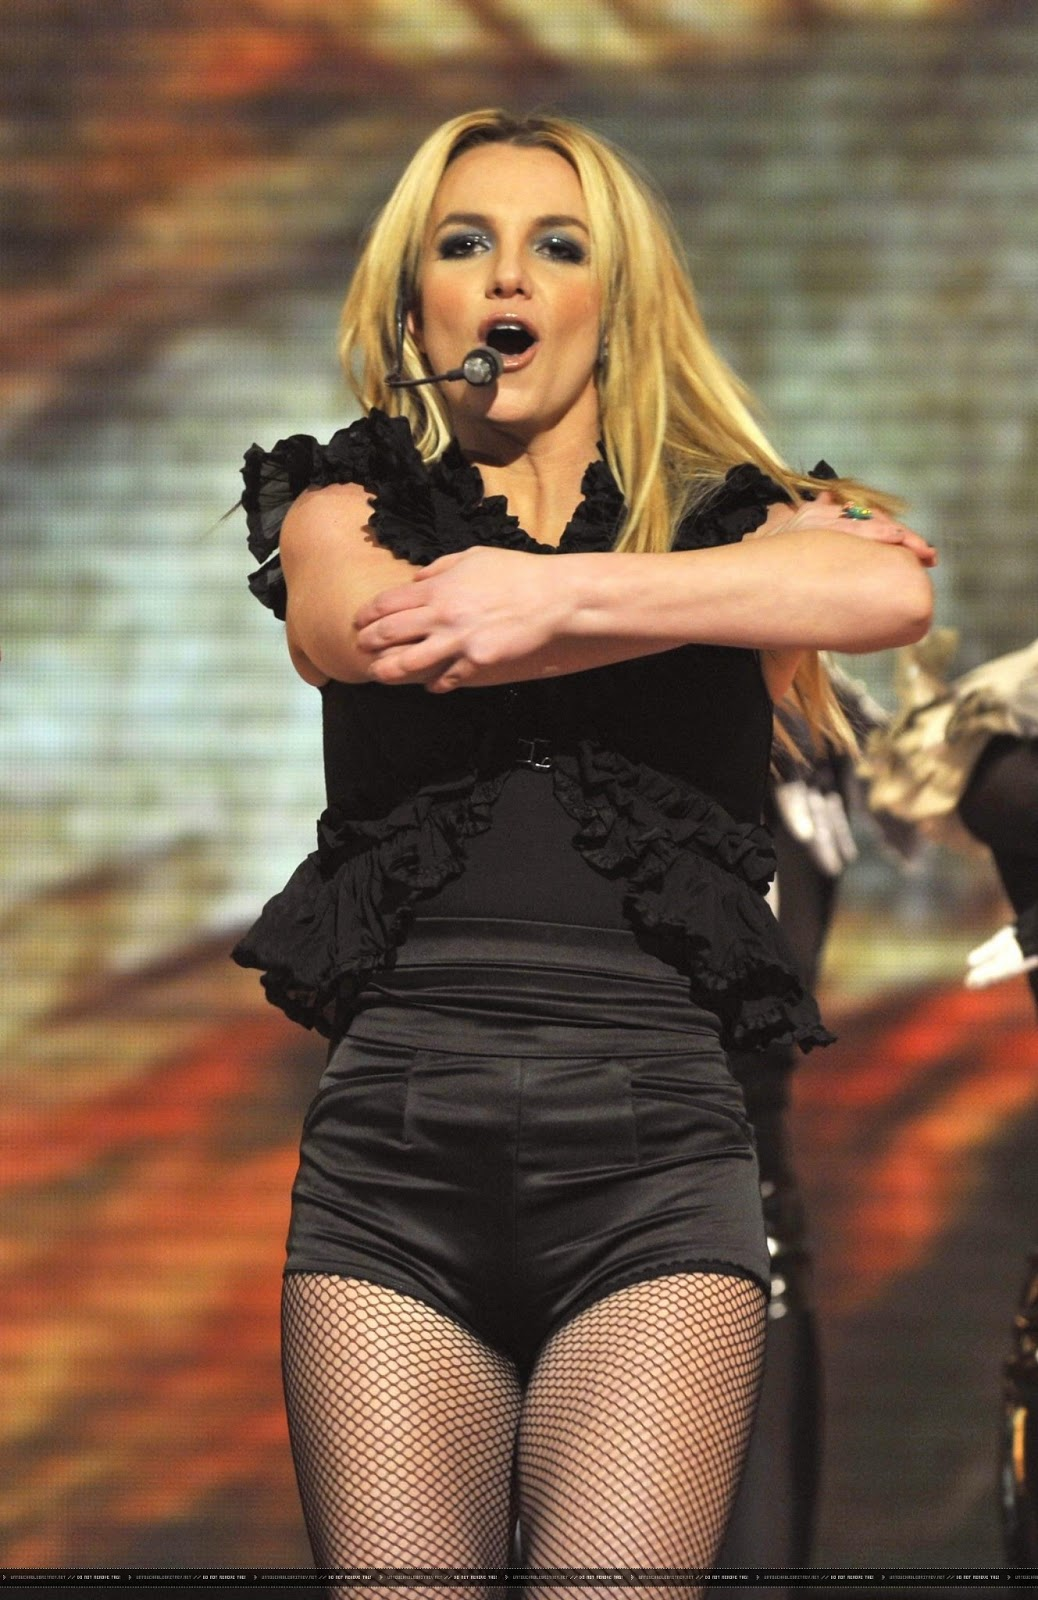 Remarkable, britney spears fishnet pantyhose all business